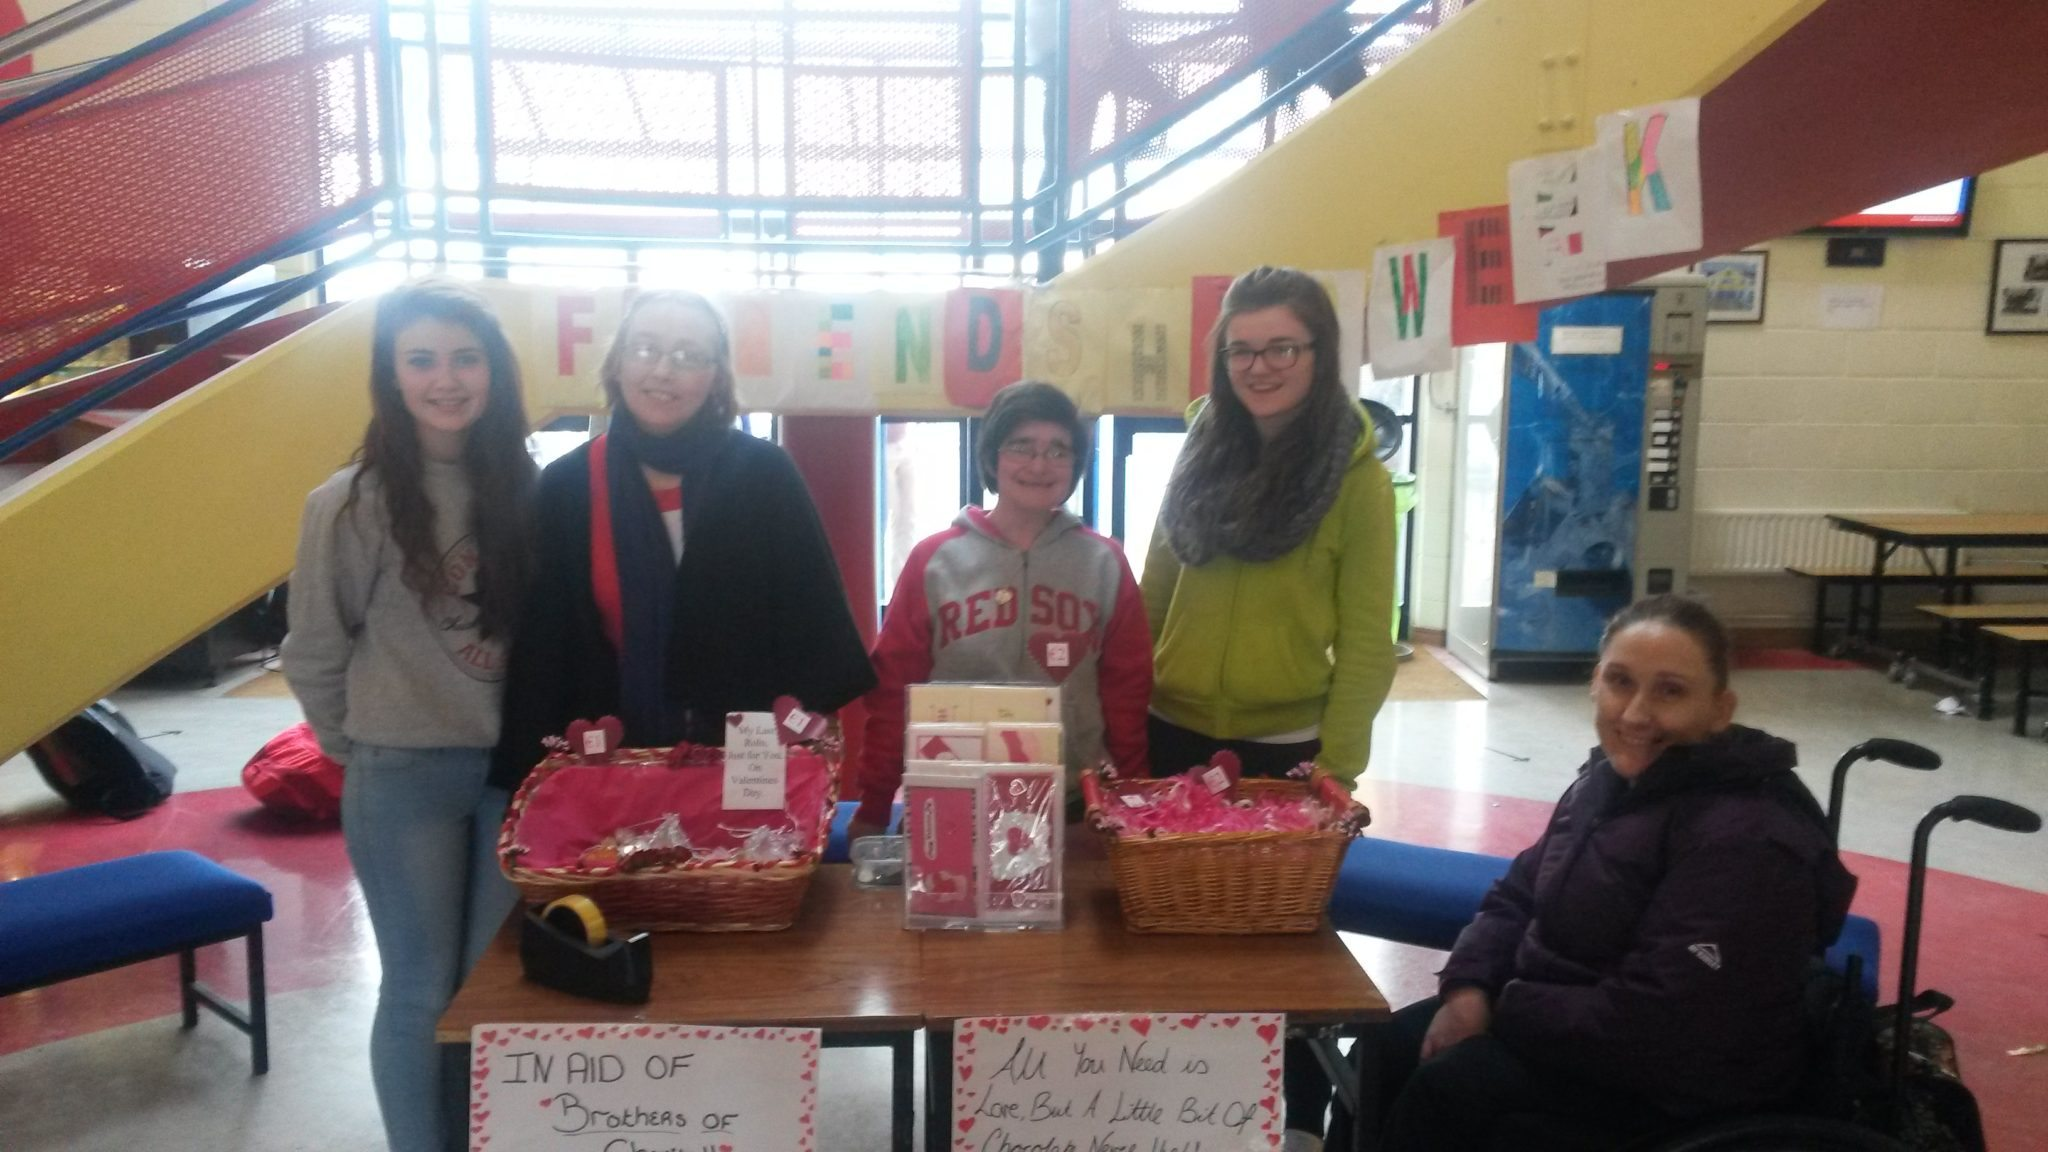 Pictured are Imelda Chalk, Mary McCann & Sinead o Mahony with Emma Herbert and Claire Mortell